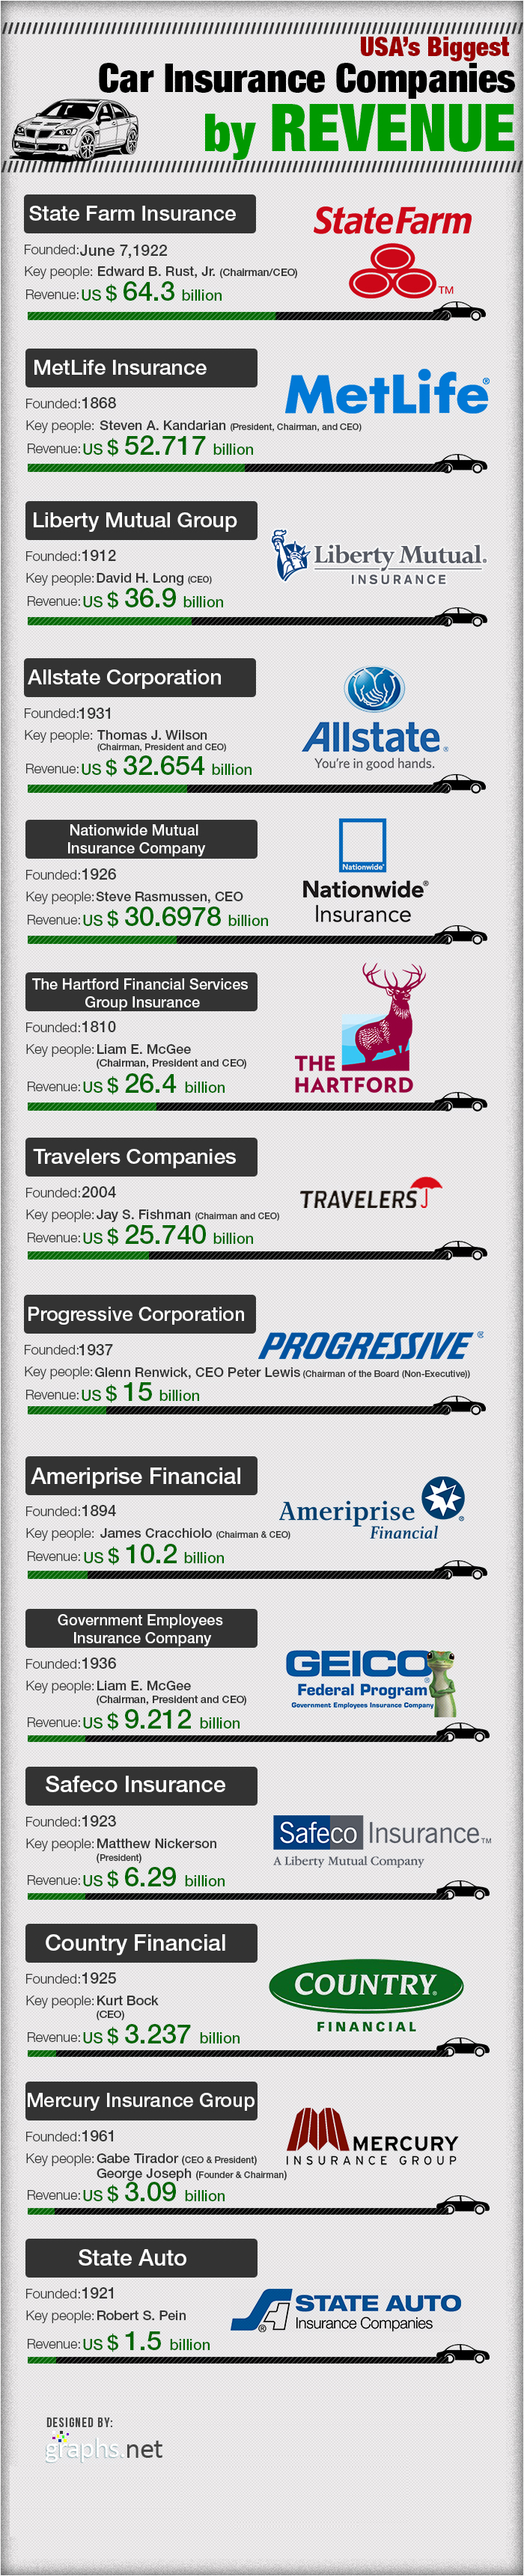 Usa Car Insurance Companies By Revenue Infographic Car Insurance